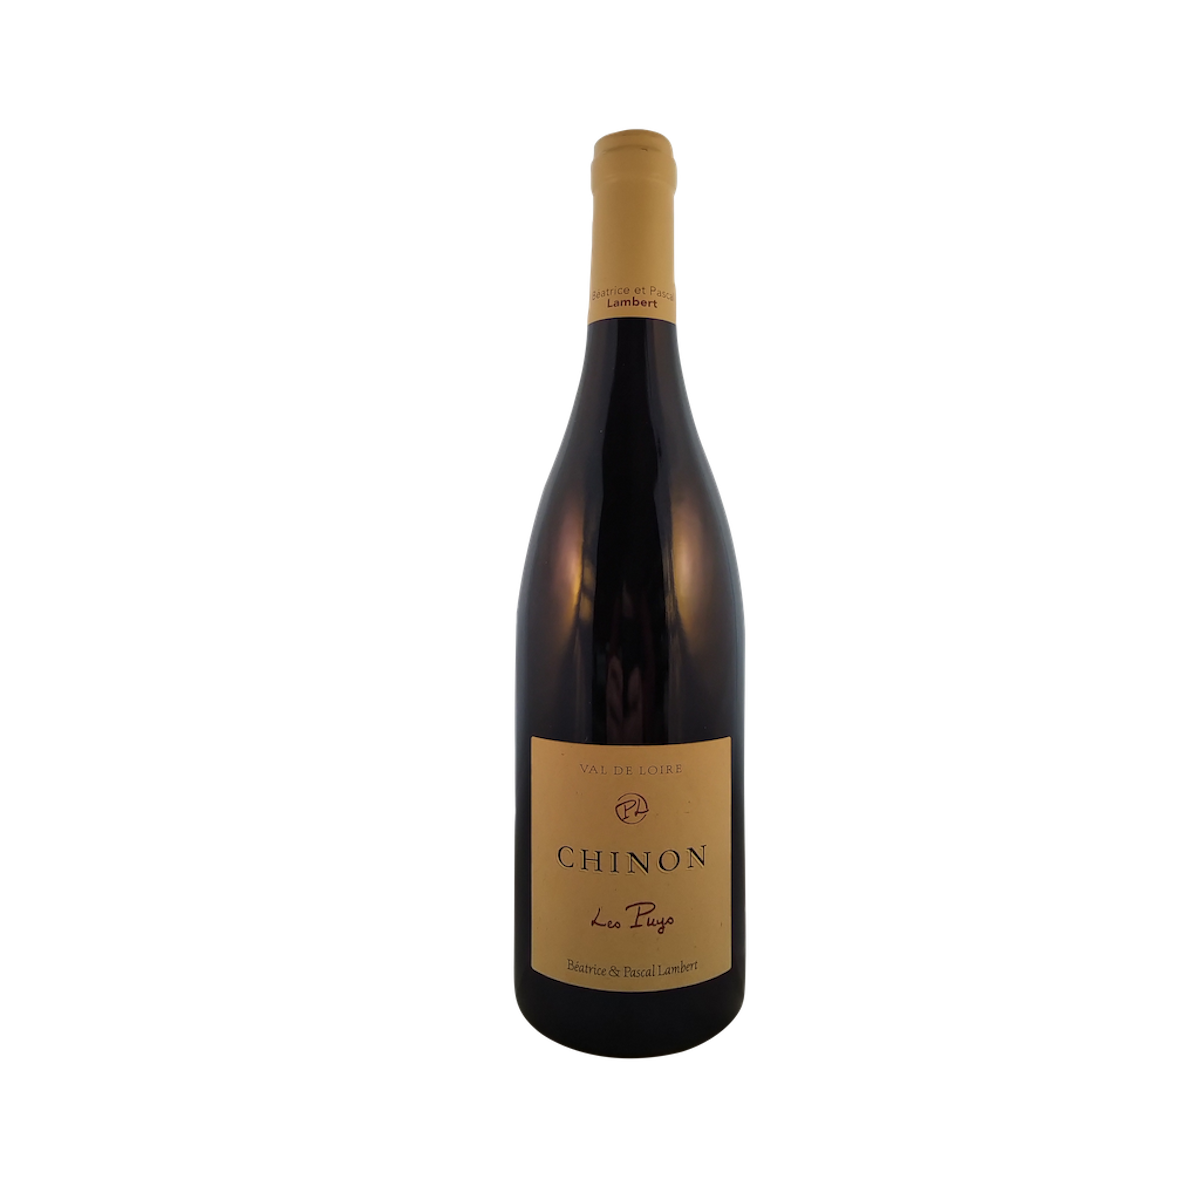 Chinon rouge 'les Puys'  Danae, 2016